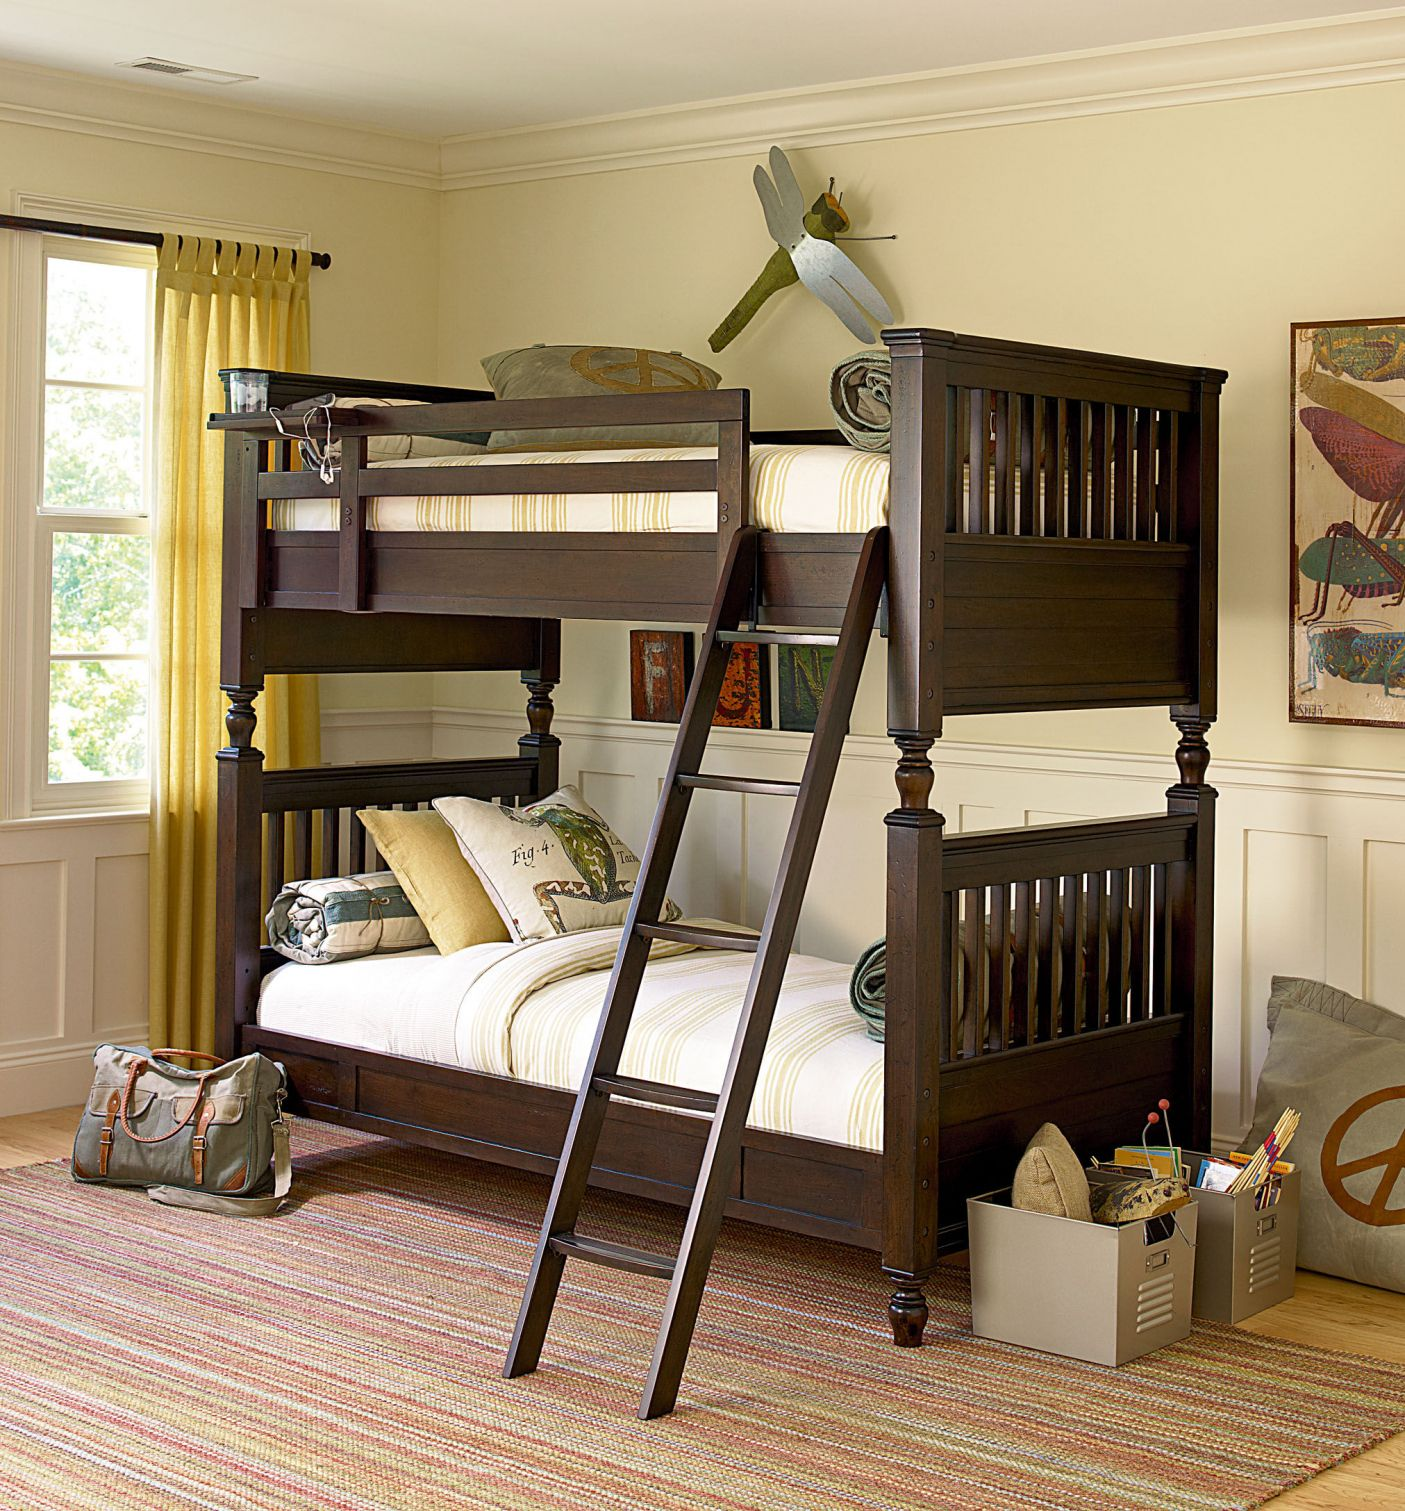 bunk beds colorado springs interior design ideas for bedroom